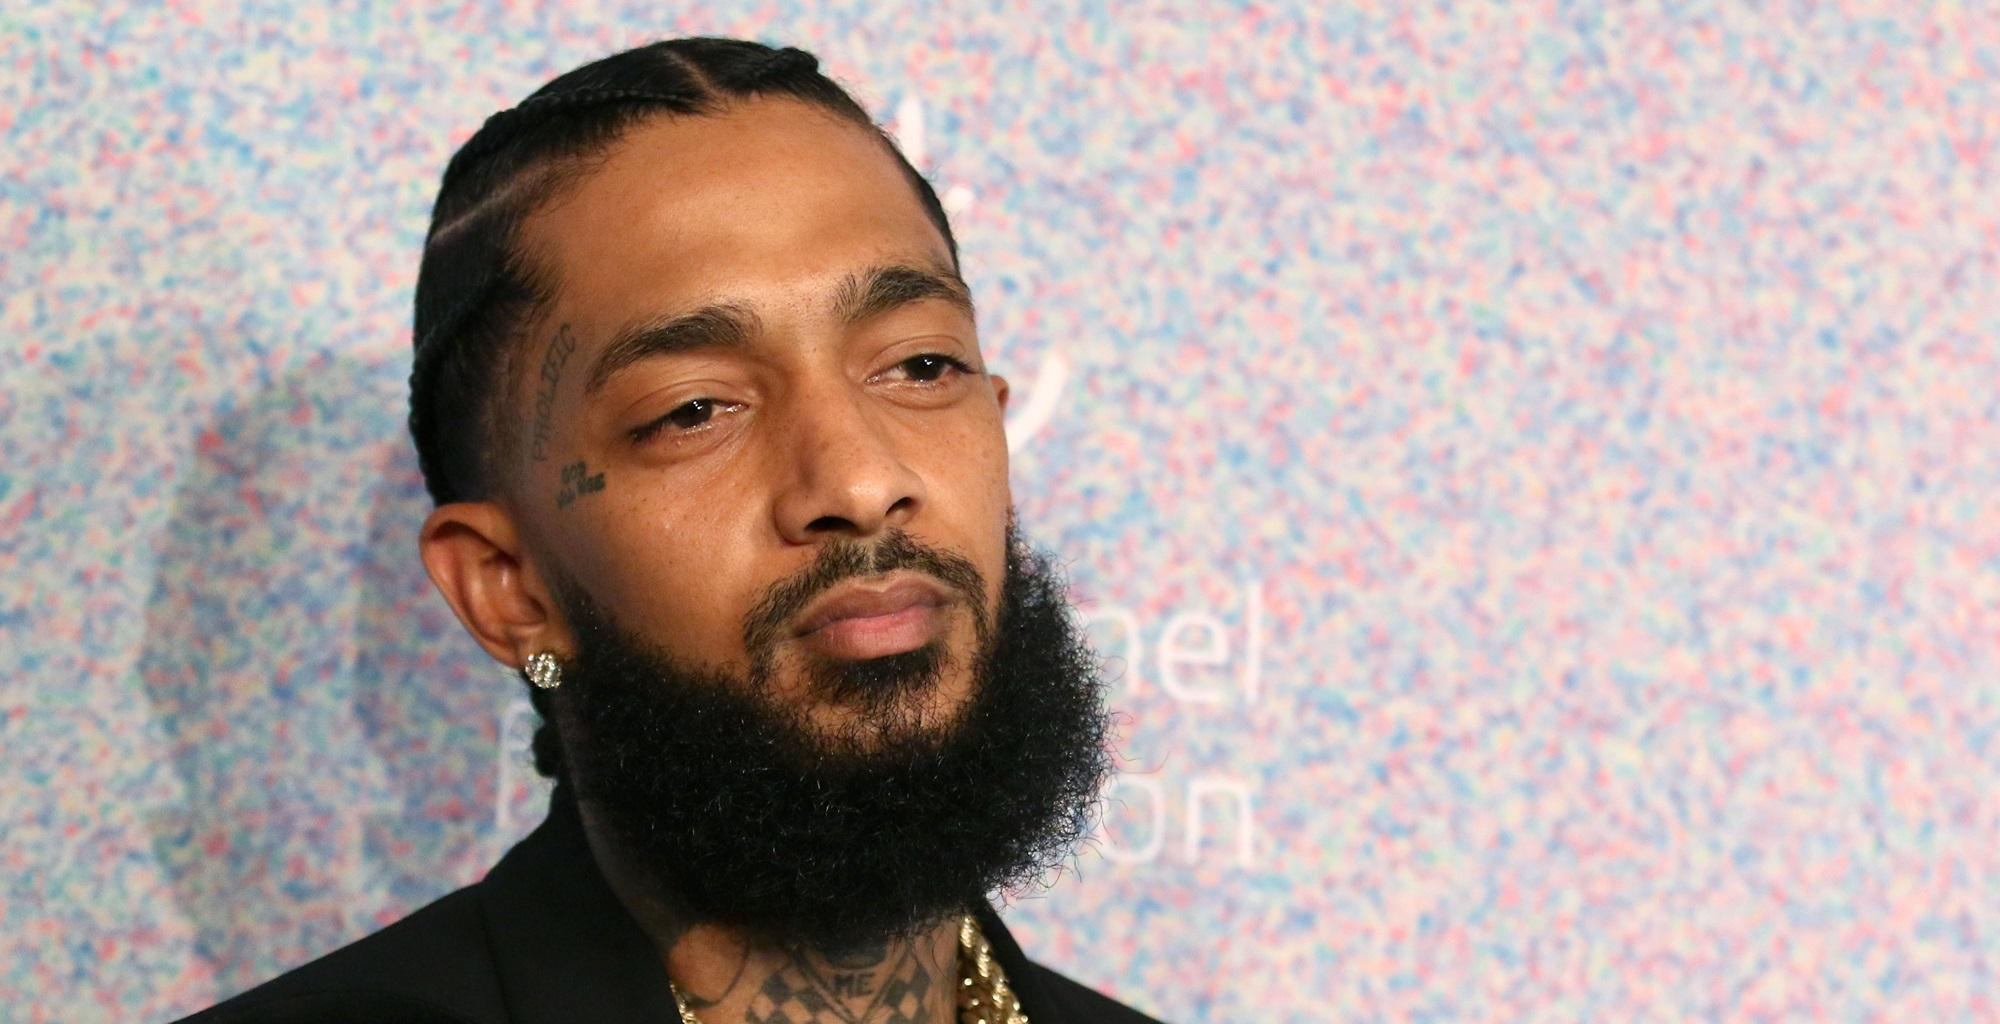 T.I. Fails To Get Back On Fans' Good Graces Despite Joining Meek Mill To Defend Nipsey Hussle After His Status Was Attacked